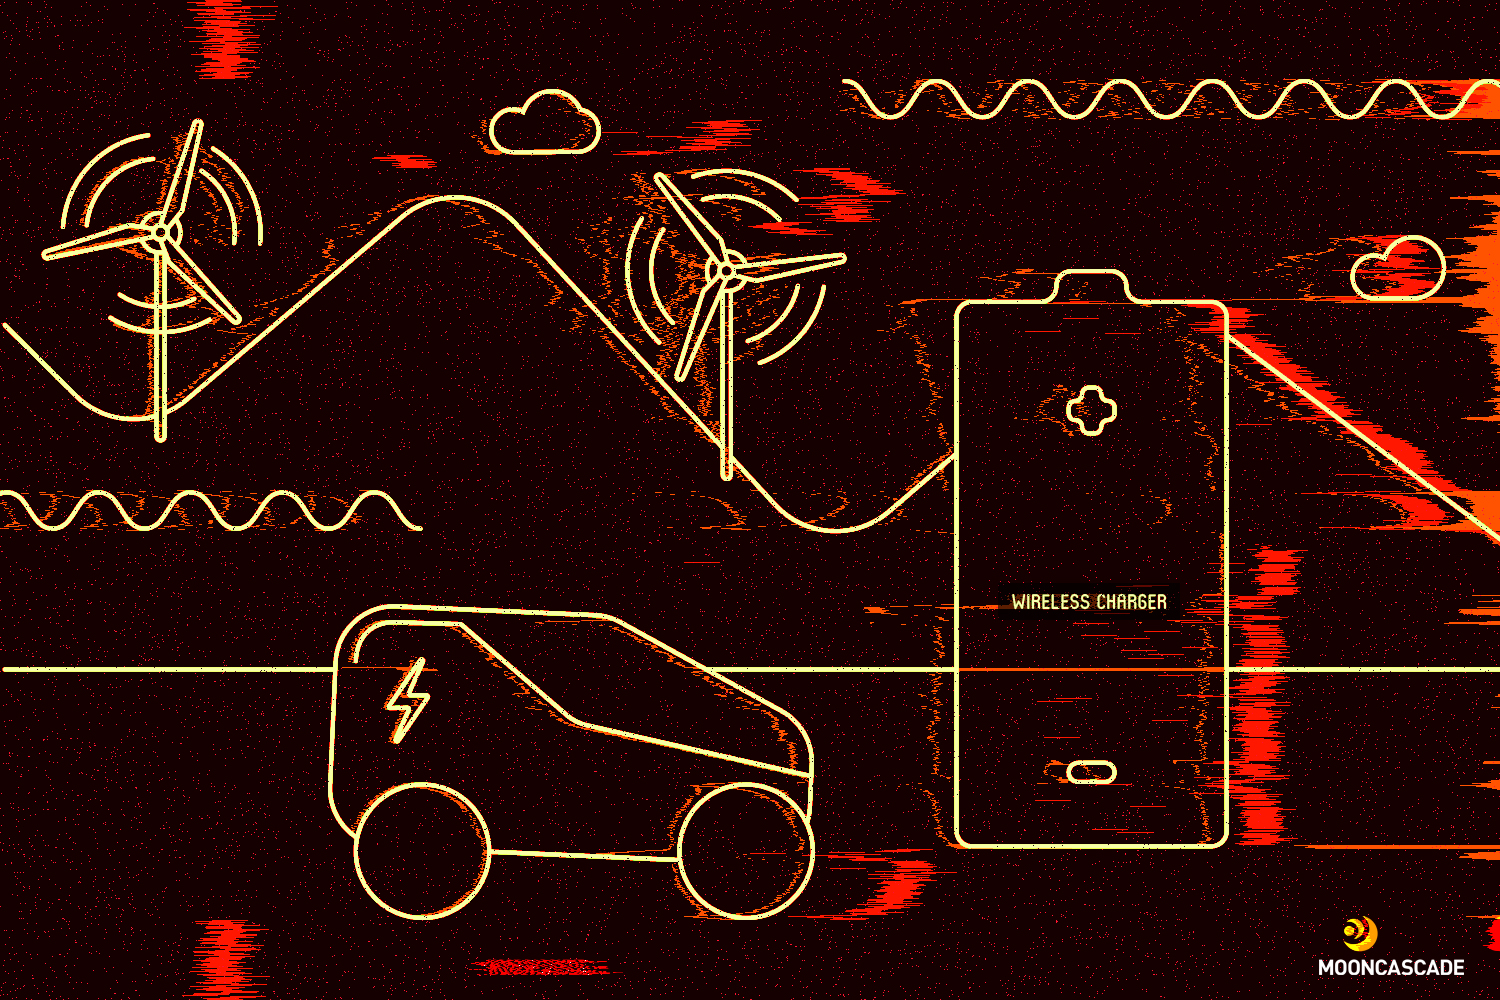 Mobility disruption includes the rise of electric cars